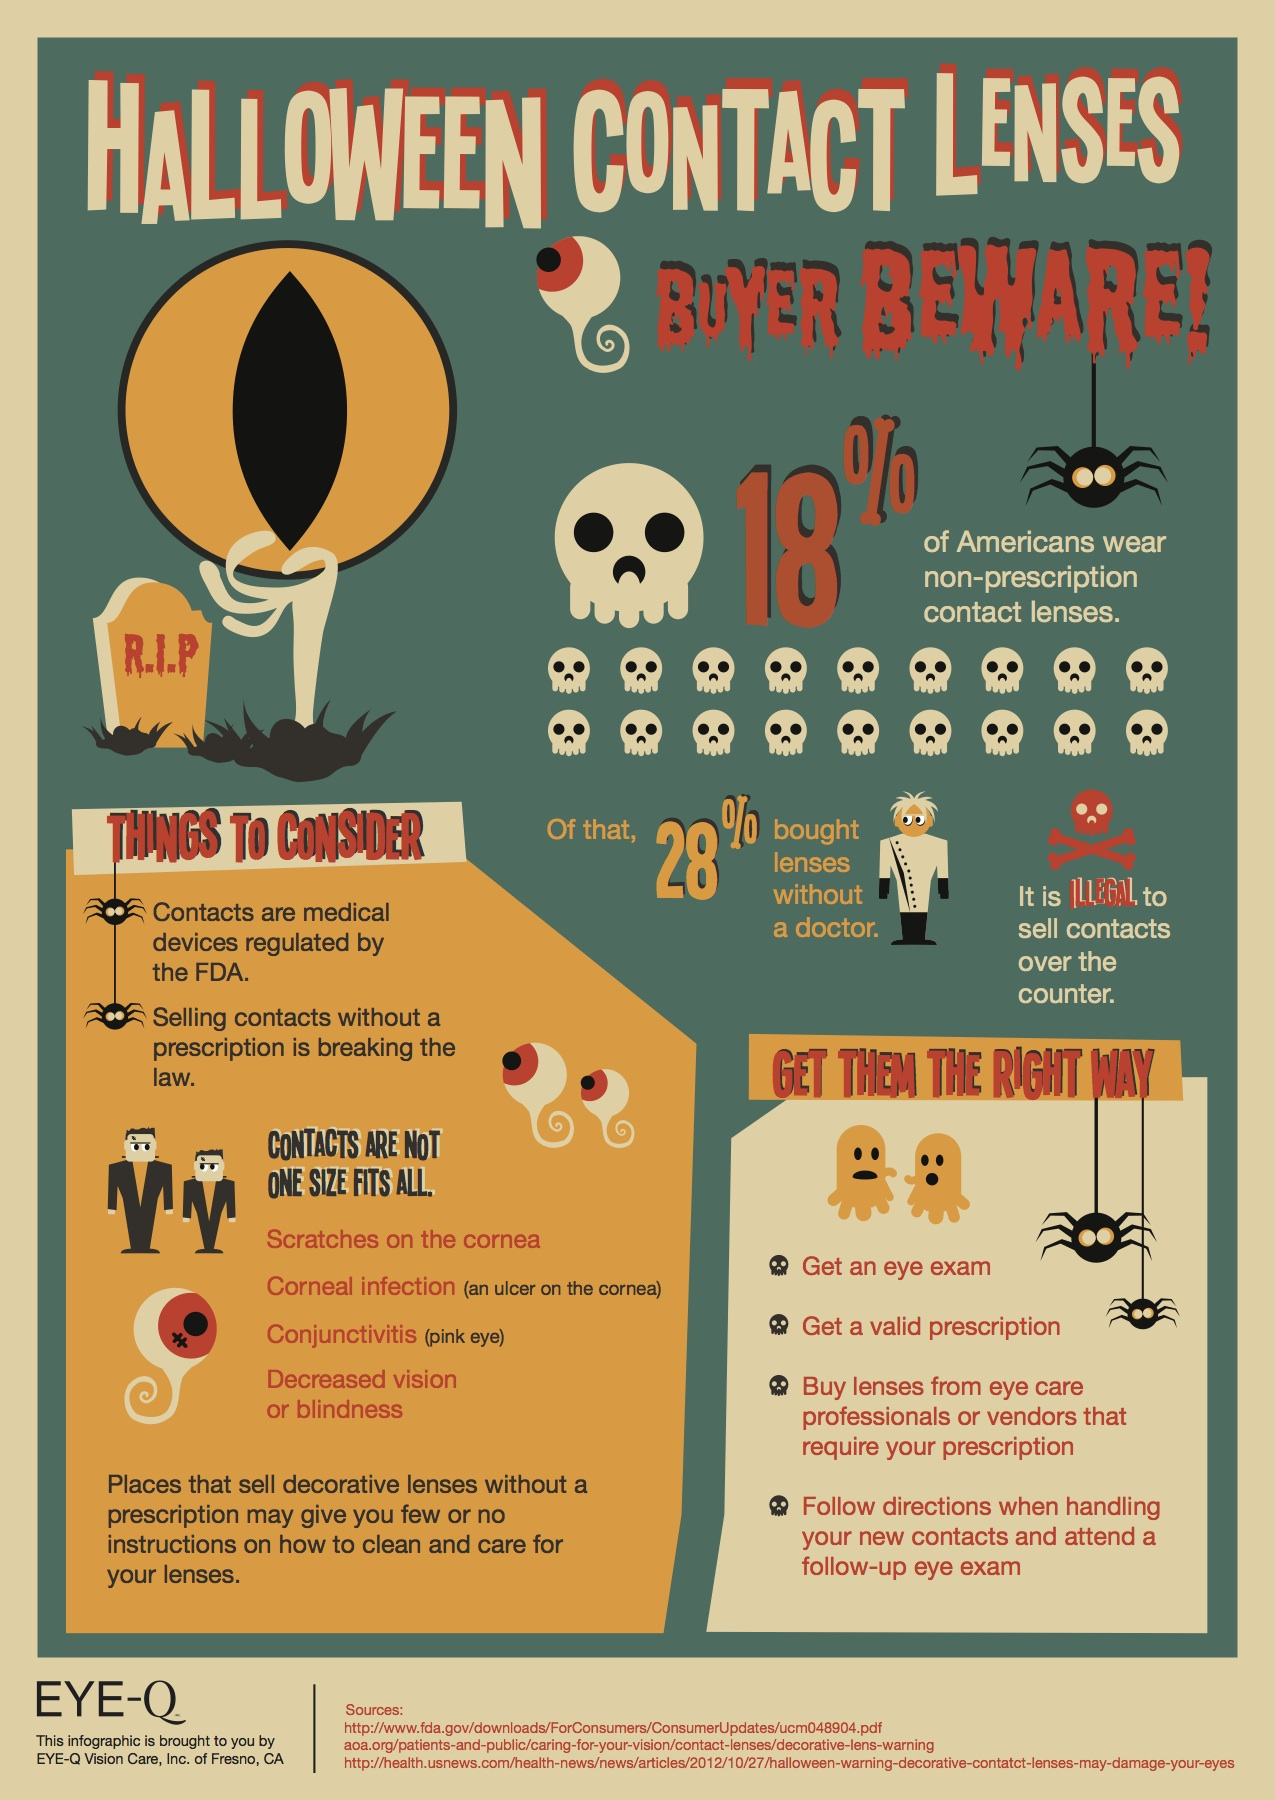 Halloween Contact Lenses Risks Eye Q Vision Care